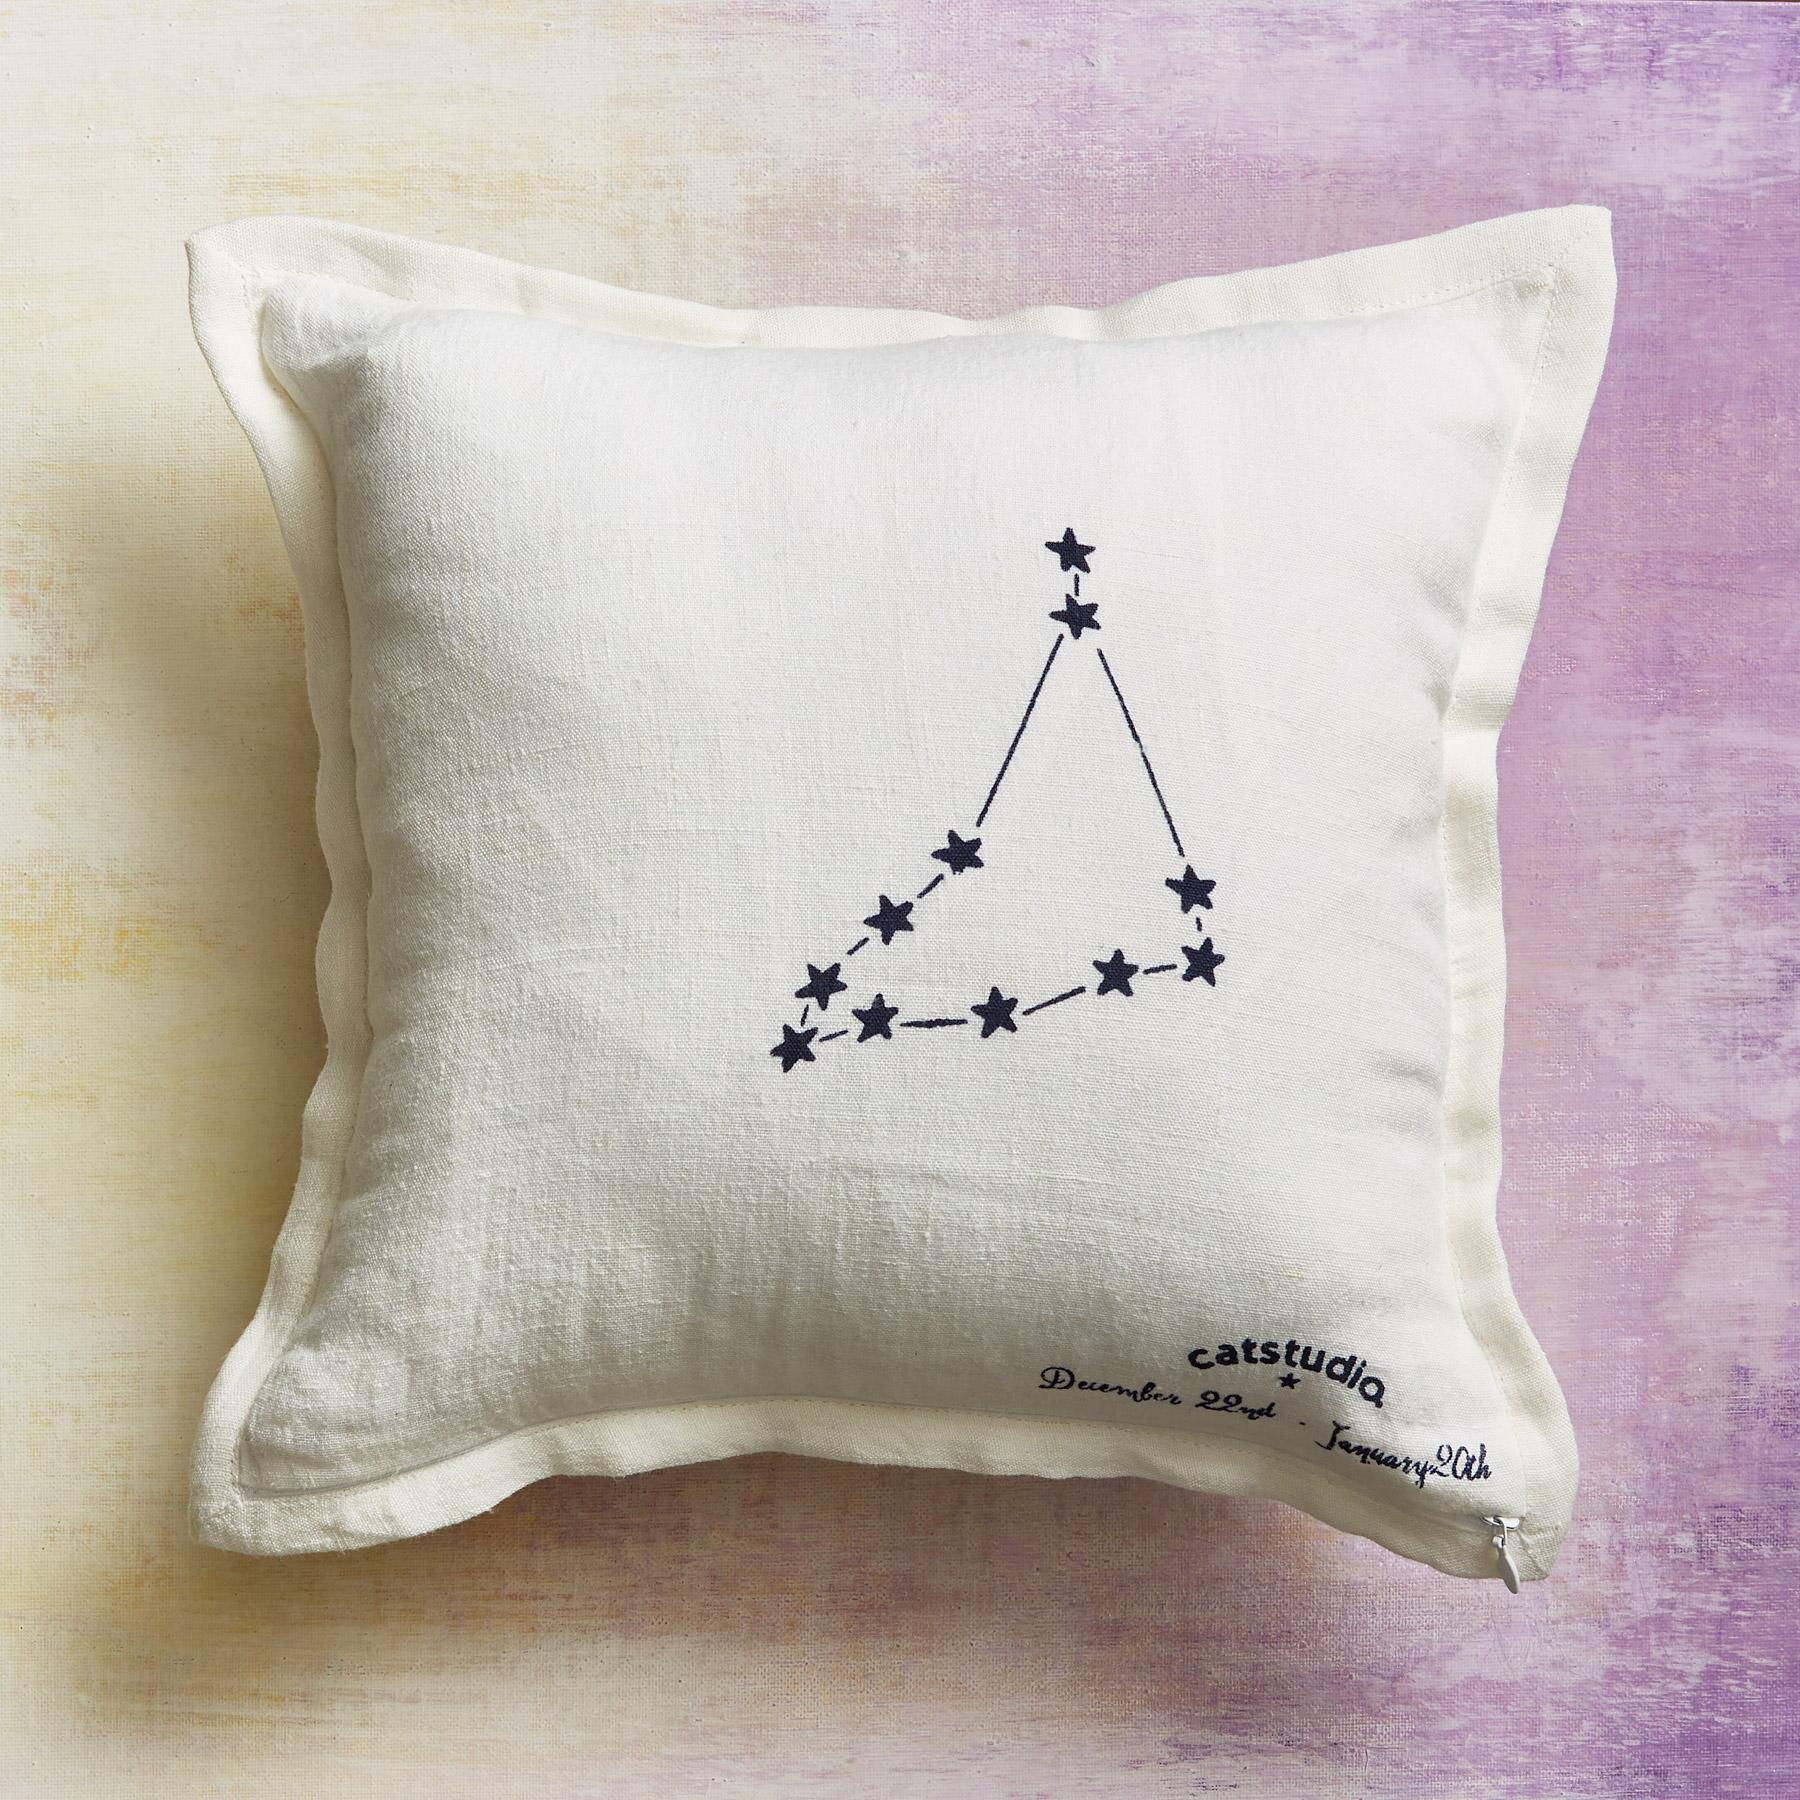 STARS ALIGN PILLOWS: View 3